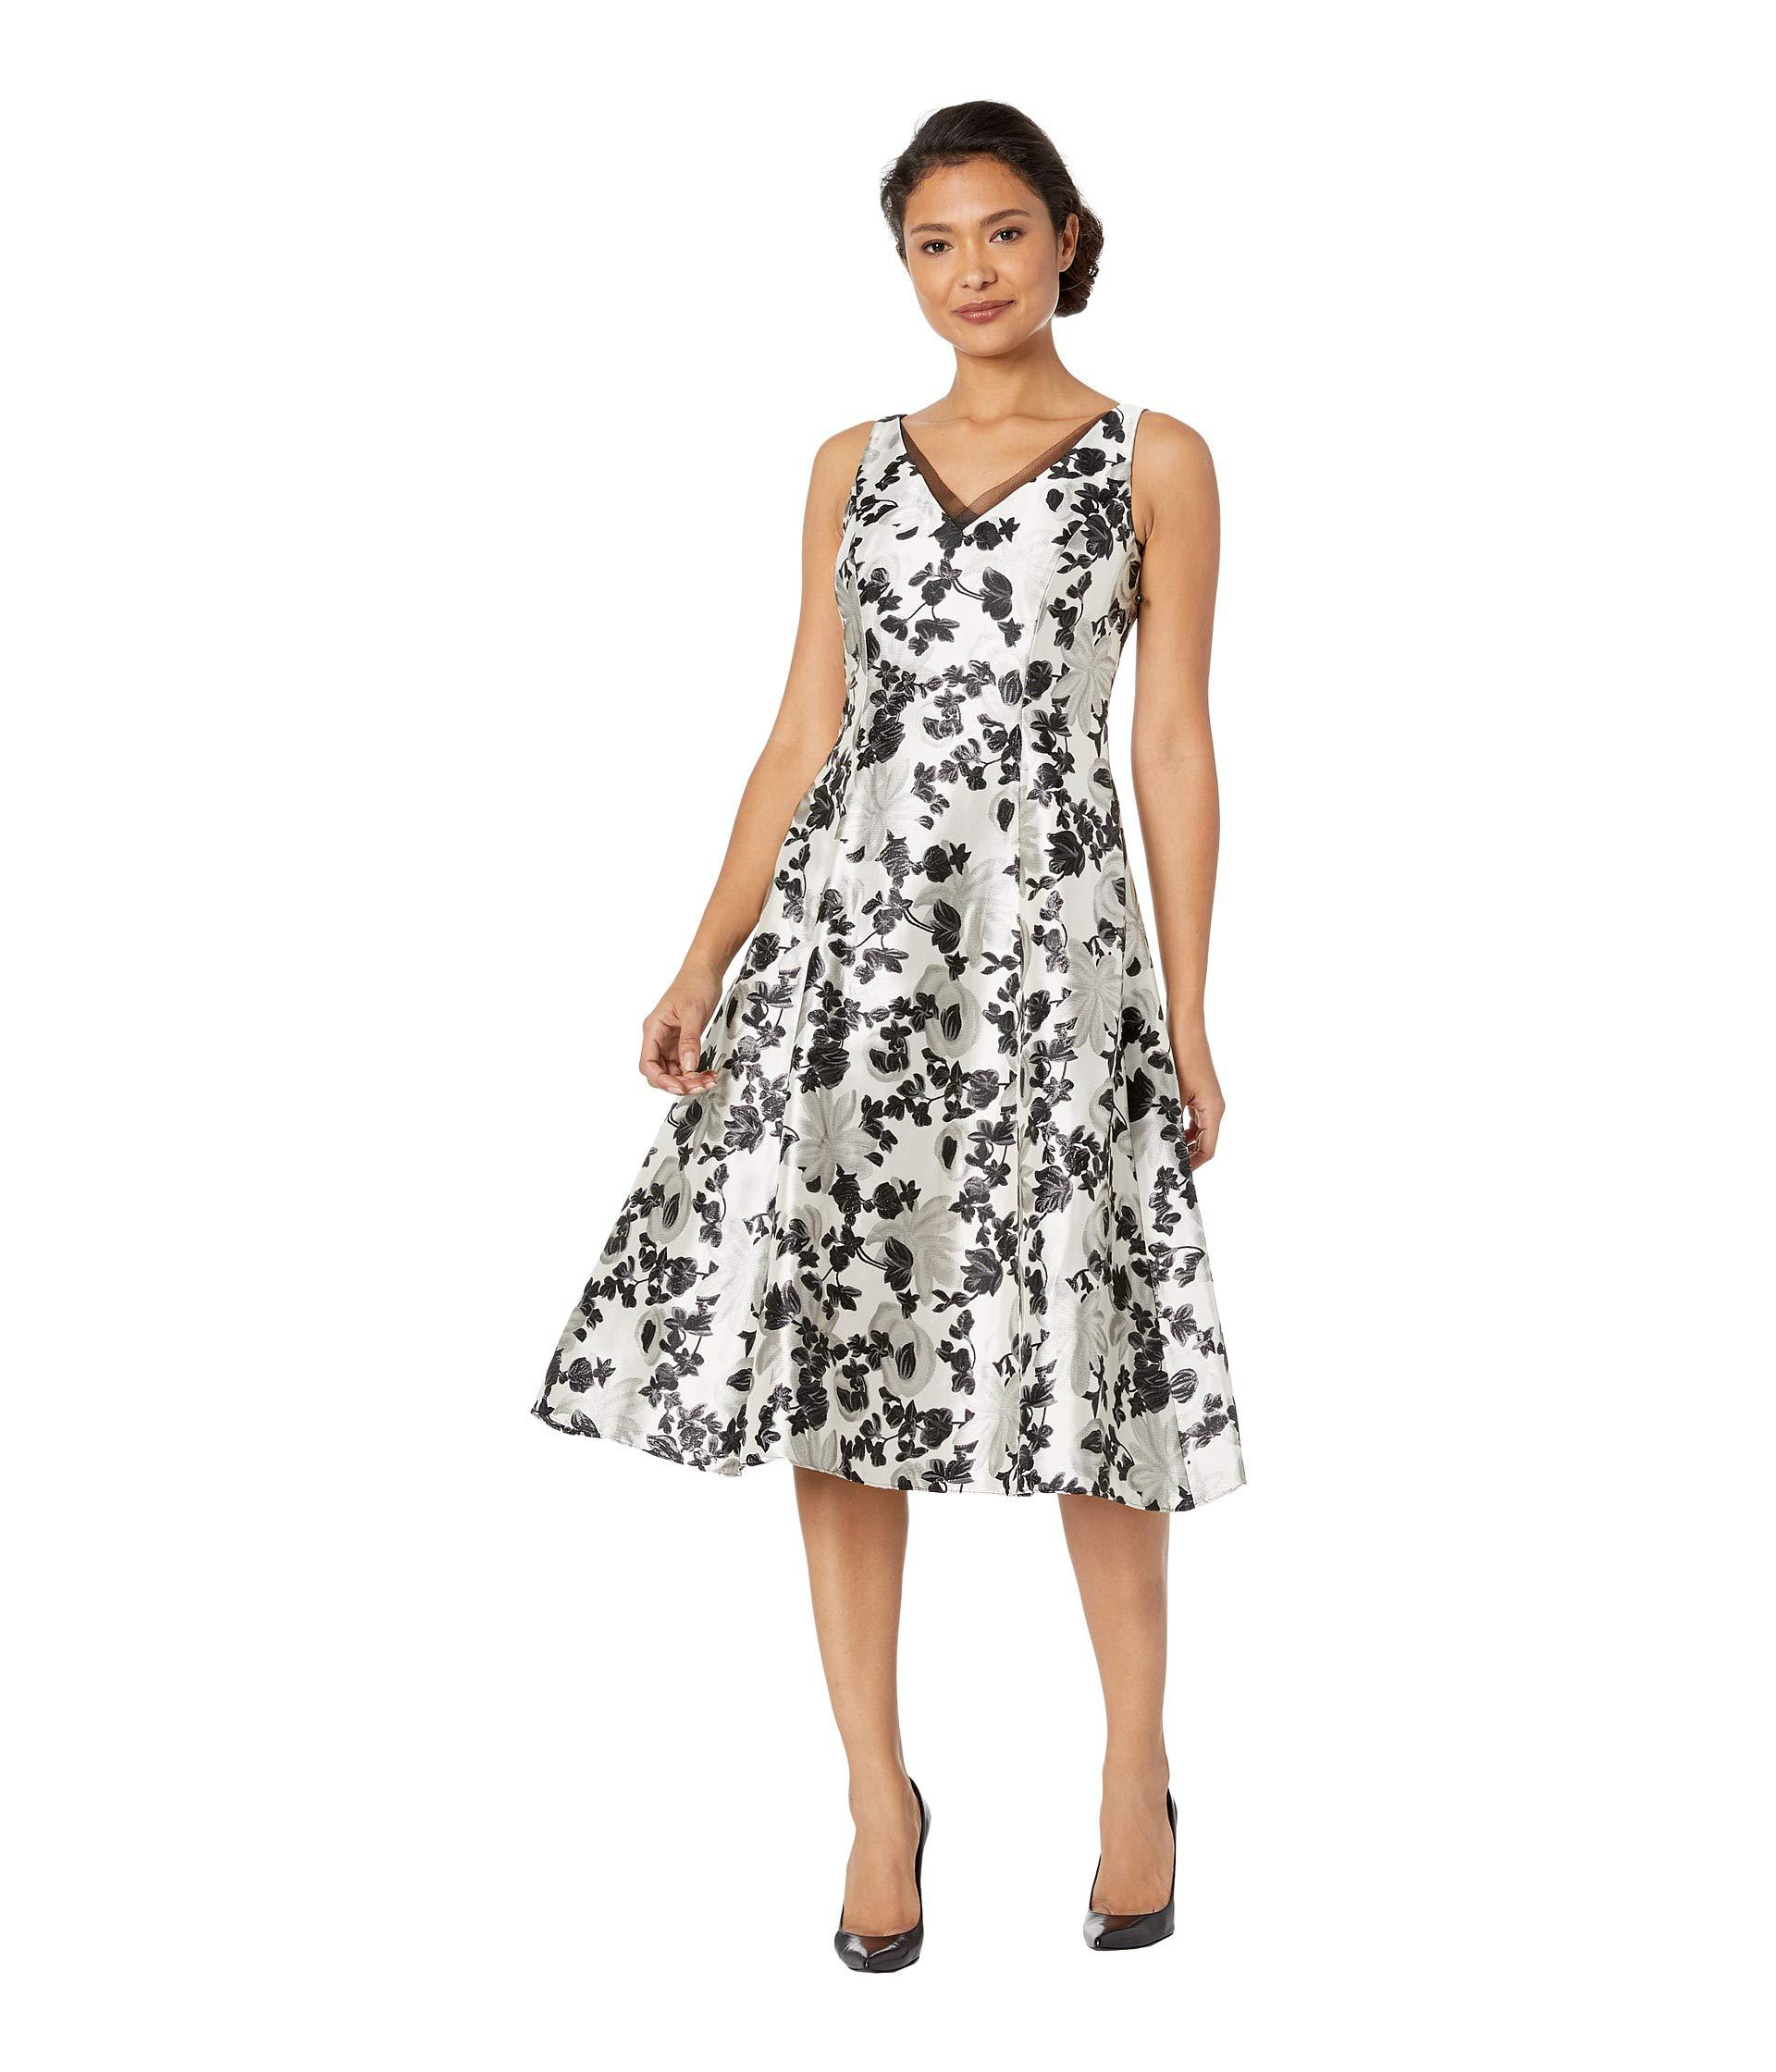 27083486bec7 Adrianna Papell Floral Metallic Jacquard Tea-length Dress (white ...